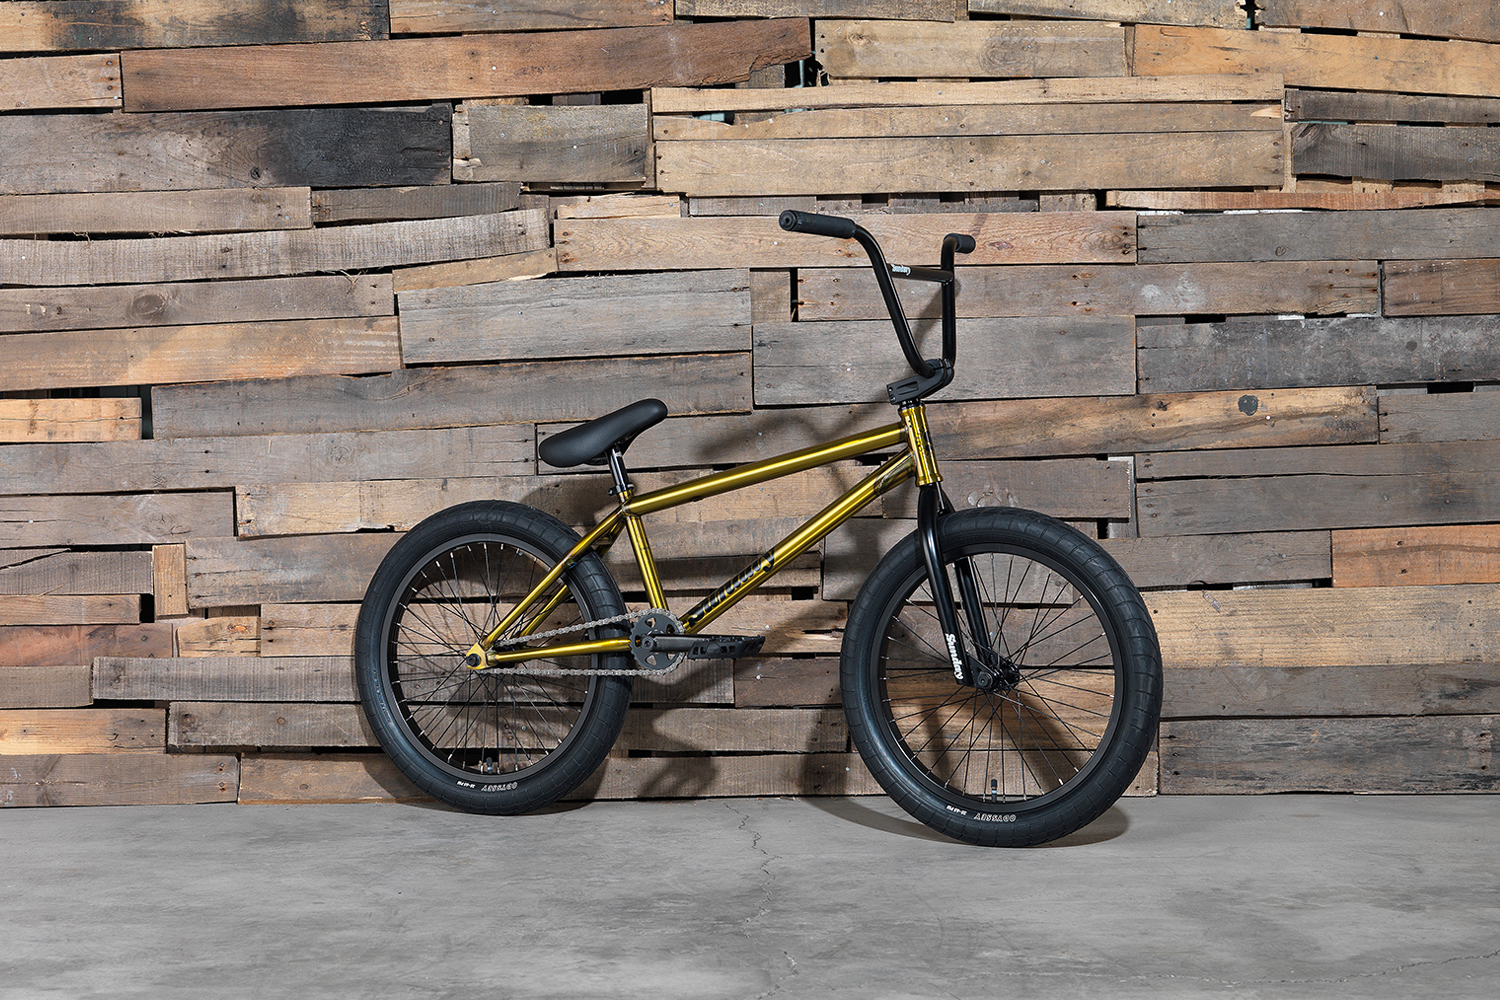 Chris Childs' Signaturerad von Sunday Bikes hat ein 20,75